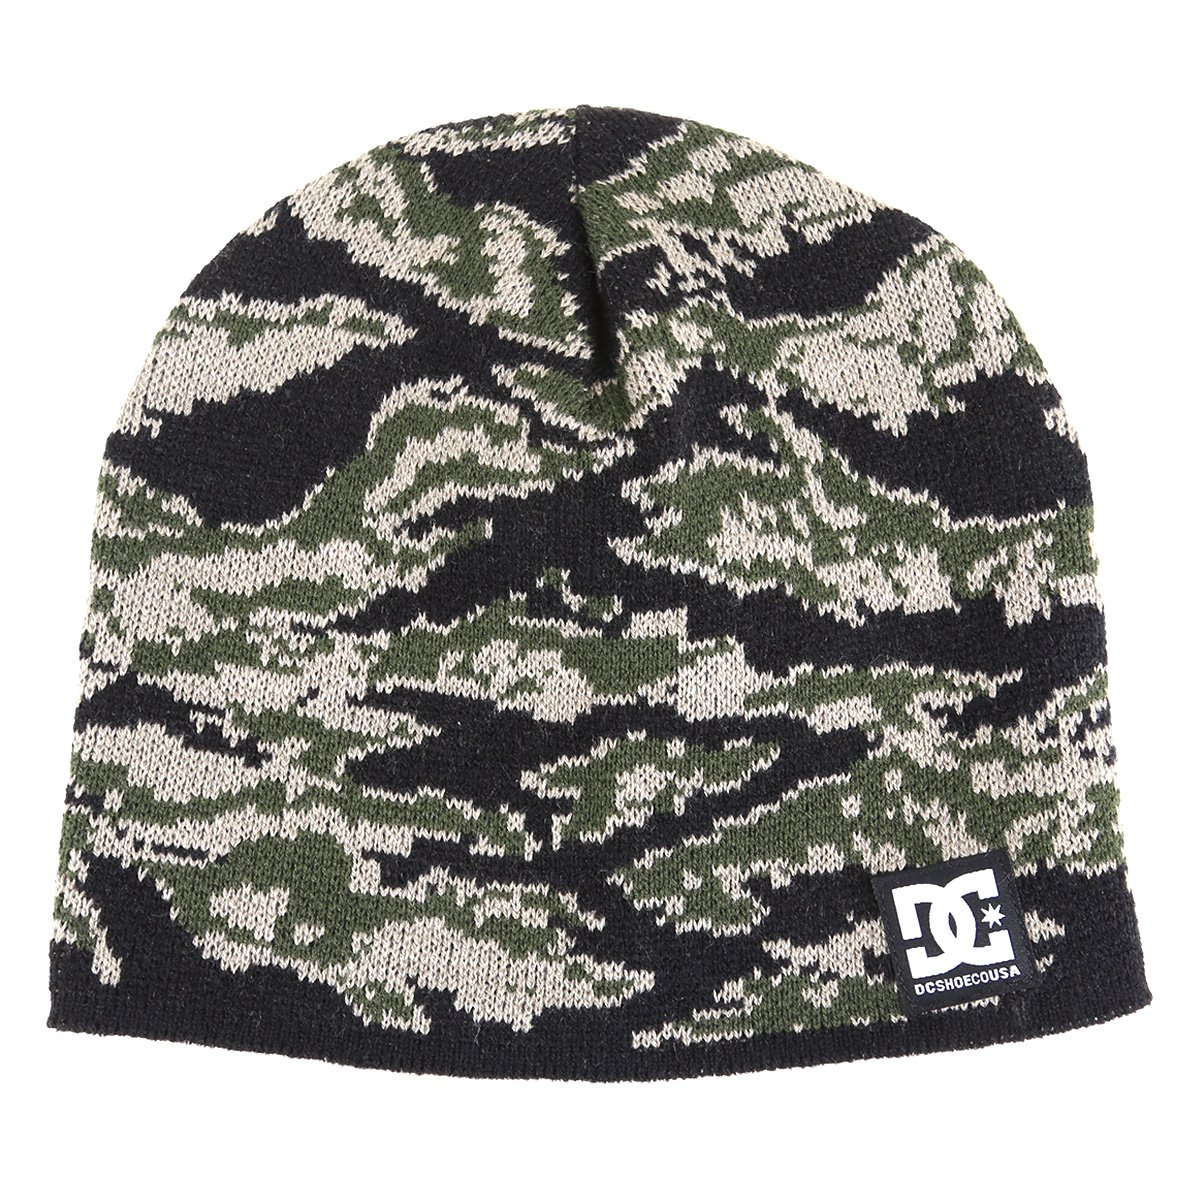 Gorro DC Shoes Camuflado